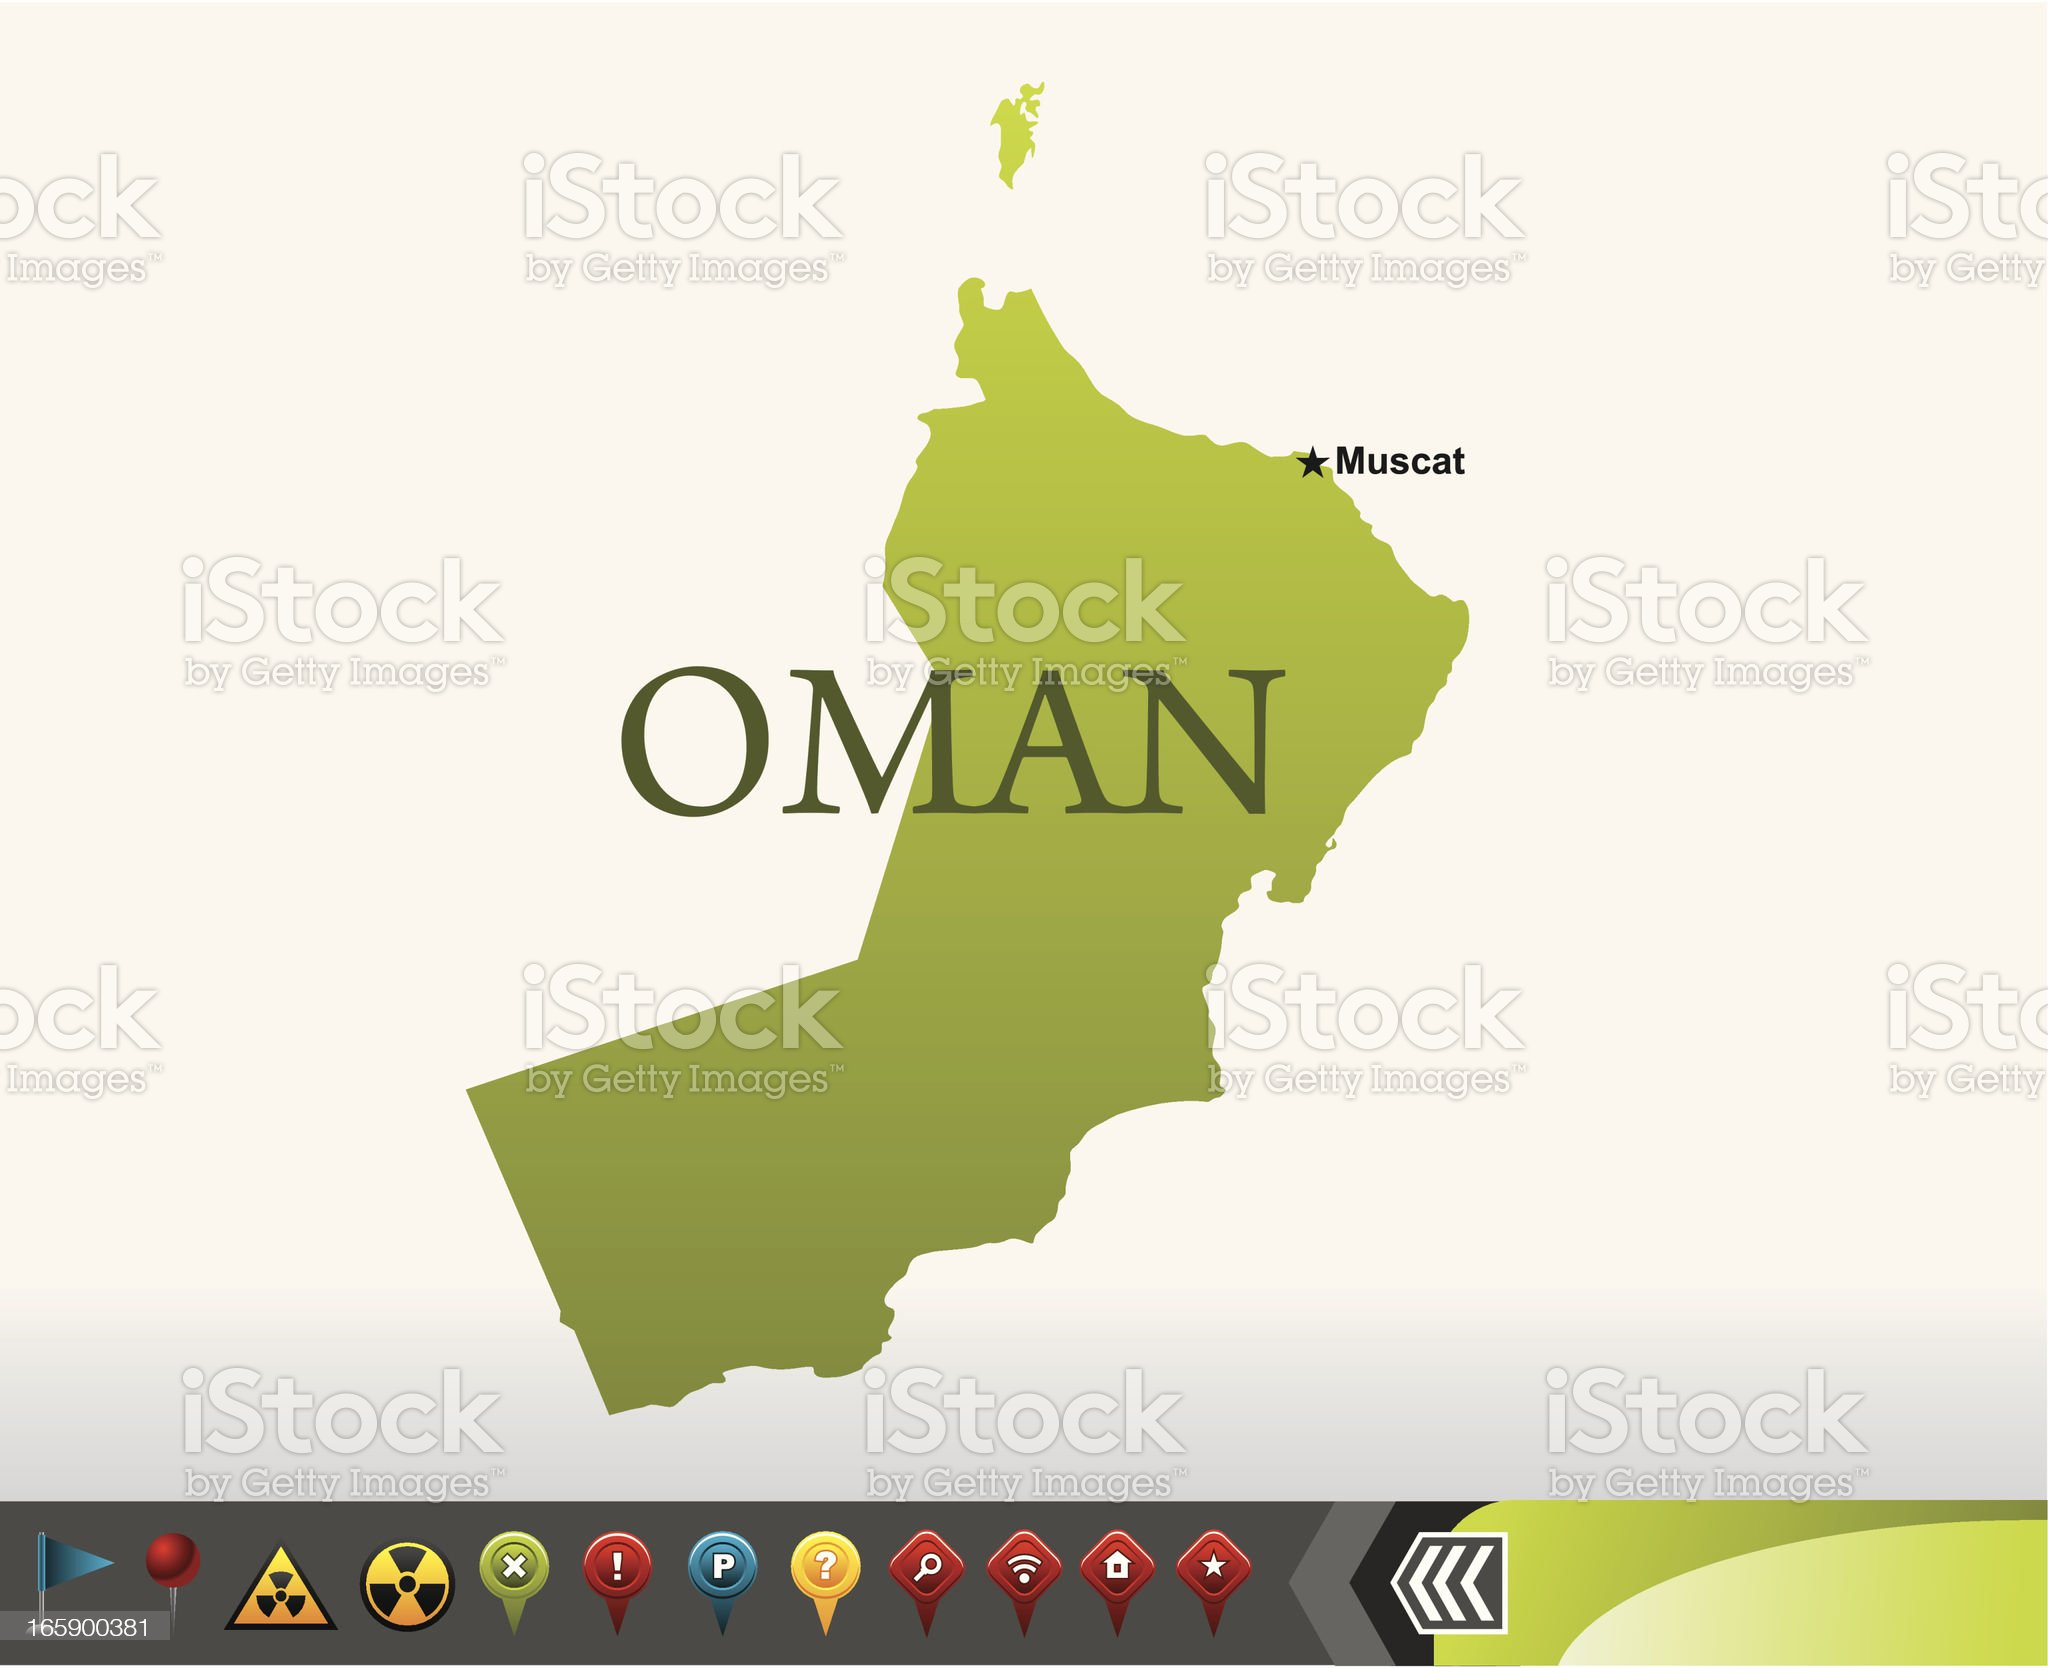 Oman map with navigation icons royalty-free stock vector art